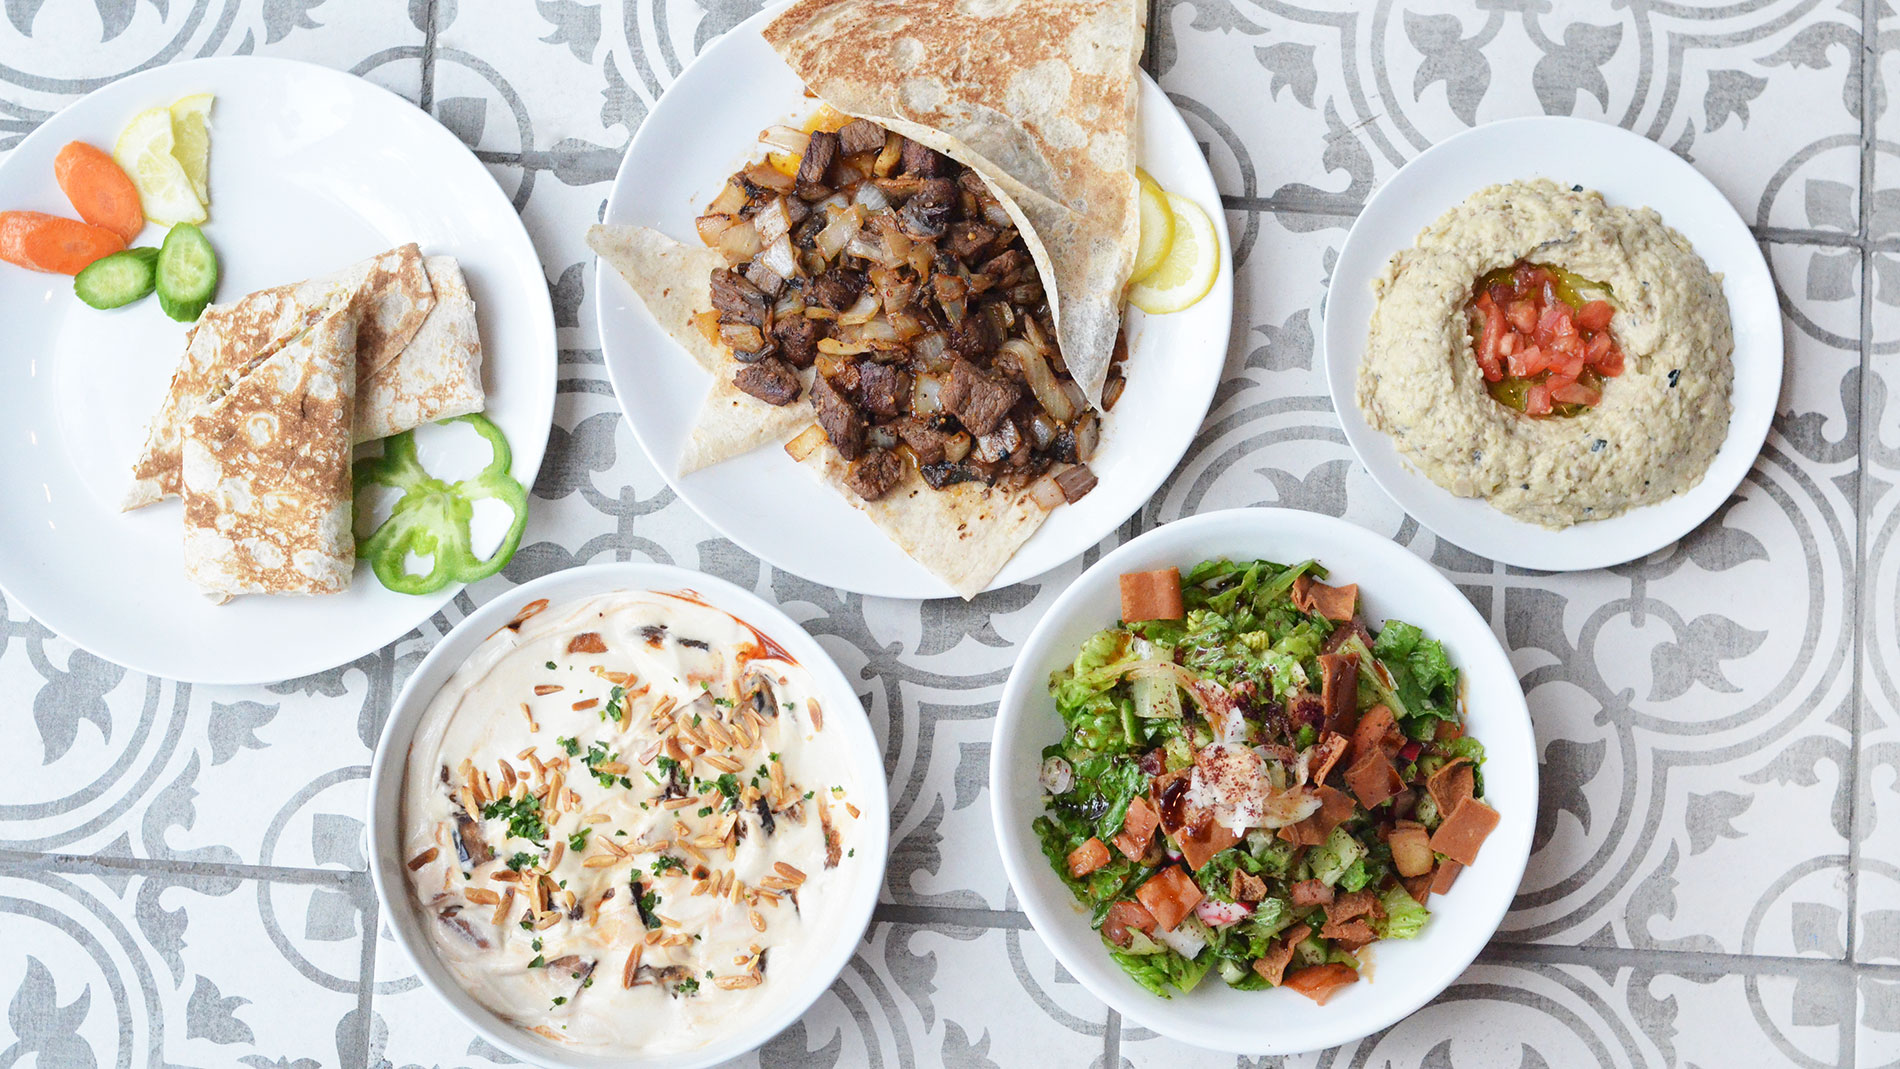 a selection of dishes from American Falafel in the Delmar Loop in St. Louis, Missouri